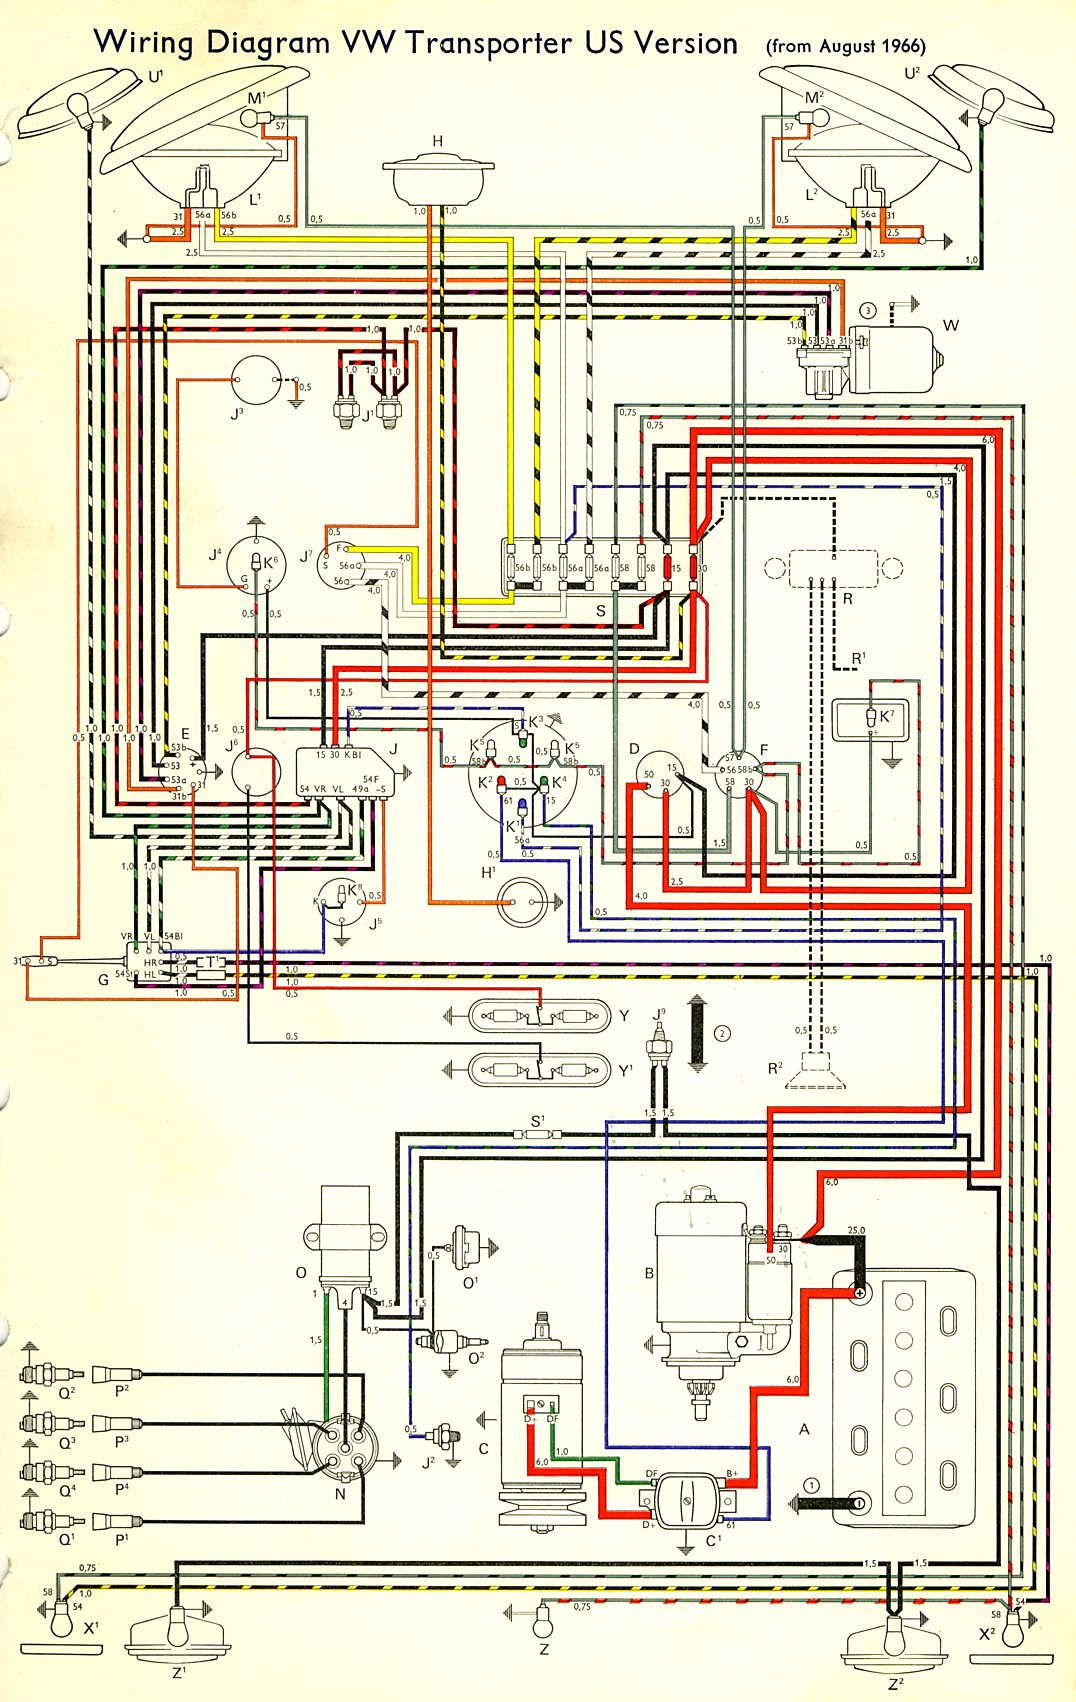 bus_67_USA thesamba com type 2 wiring diagrams 1970 vw wiring diagram at mifinder.co